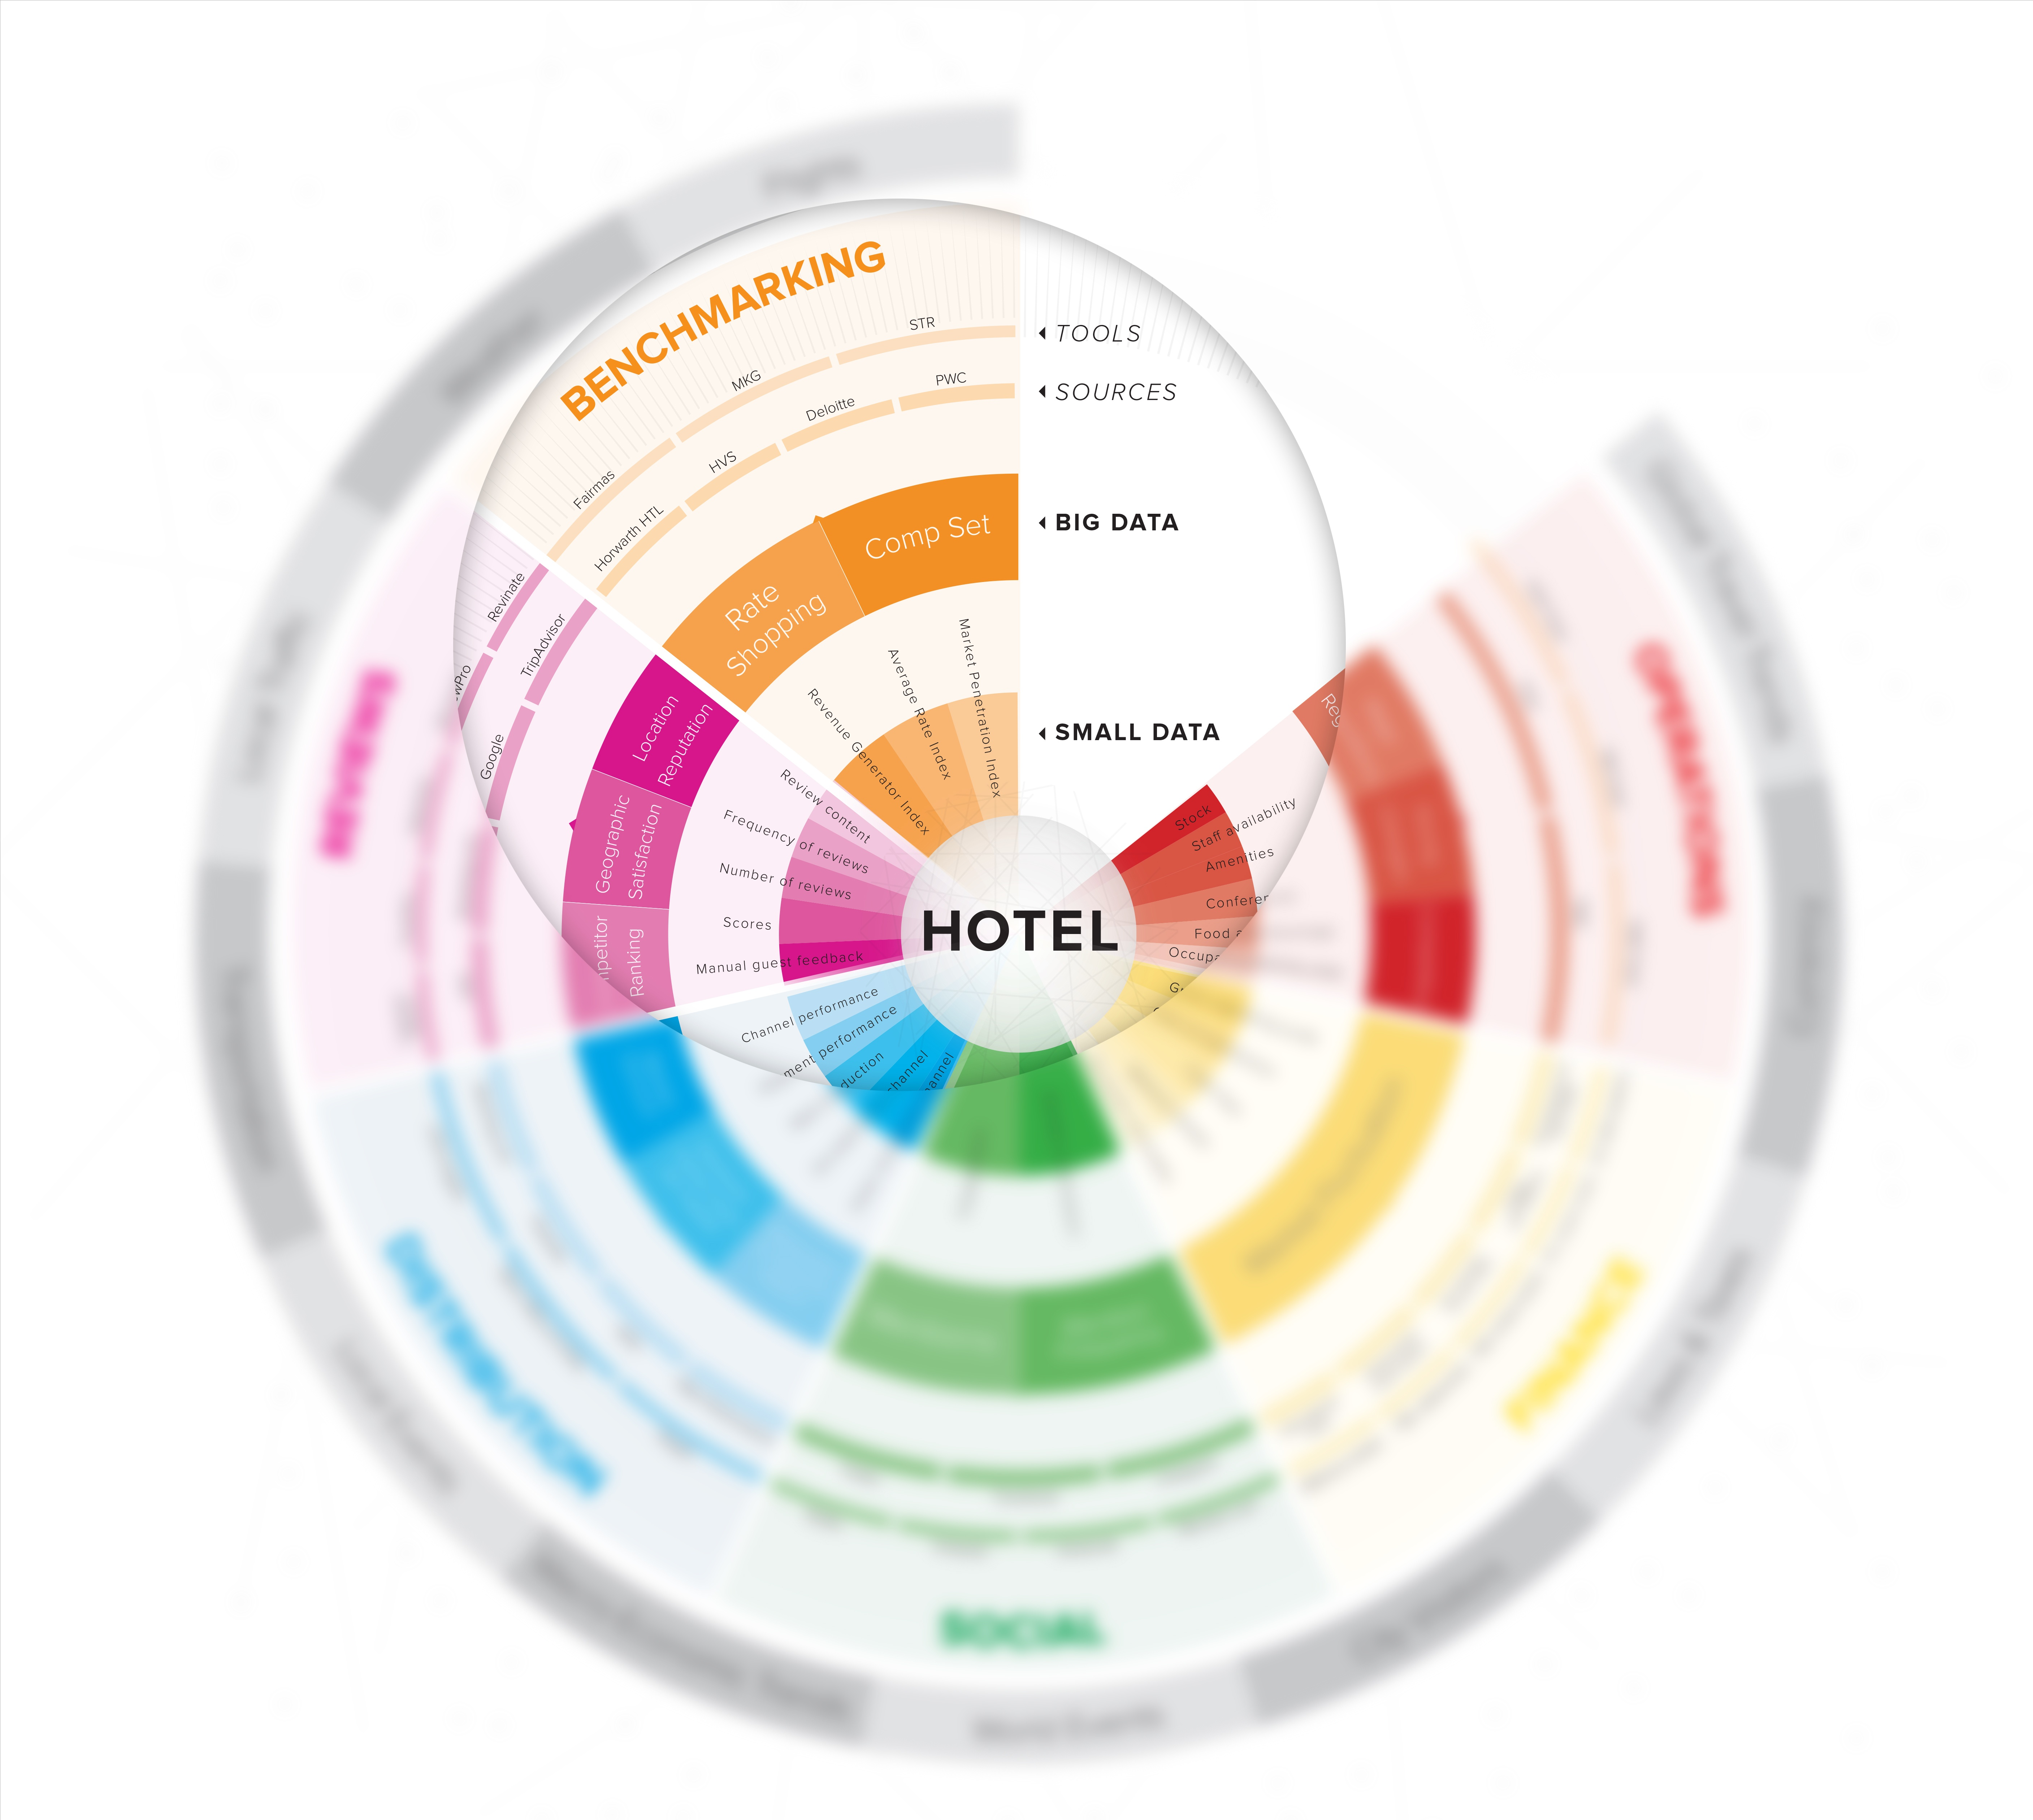 Hotel_Data_types_in_2016_teaser.jpg